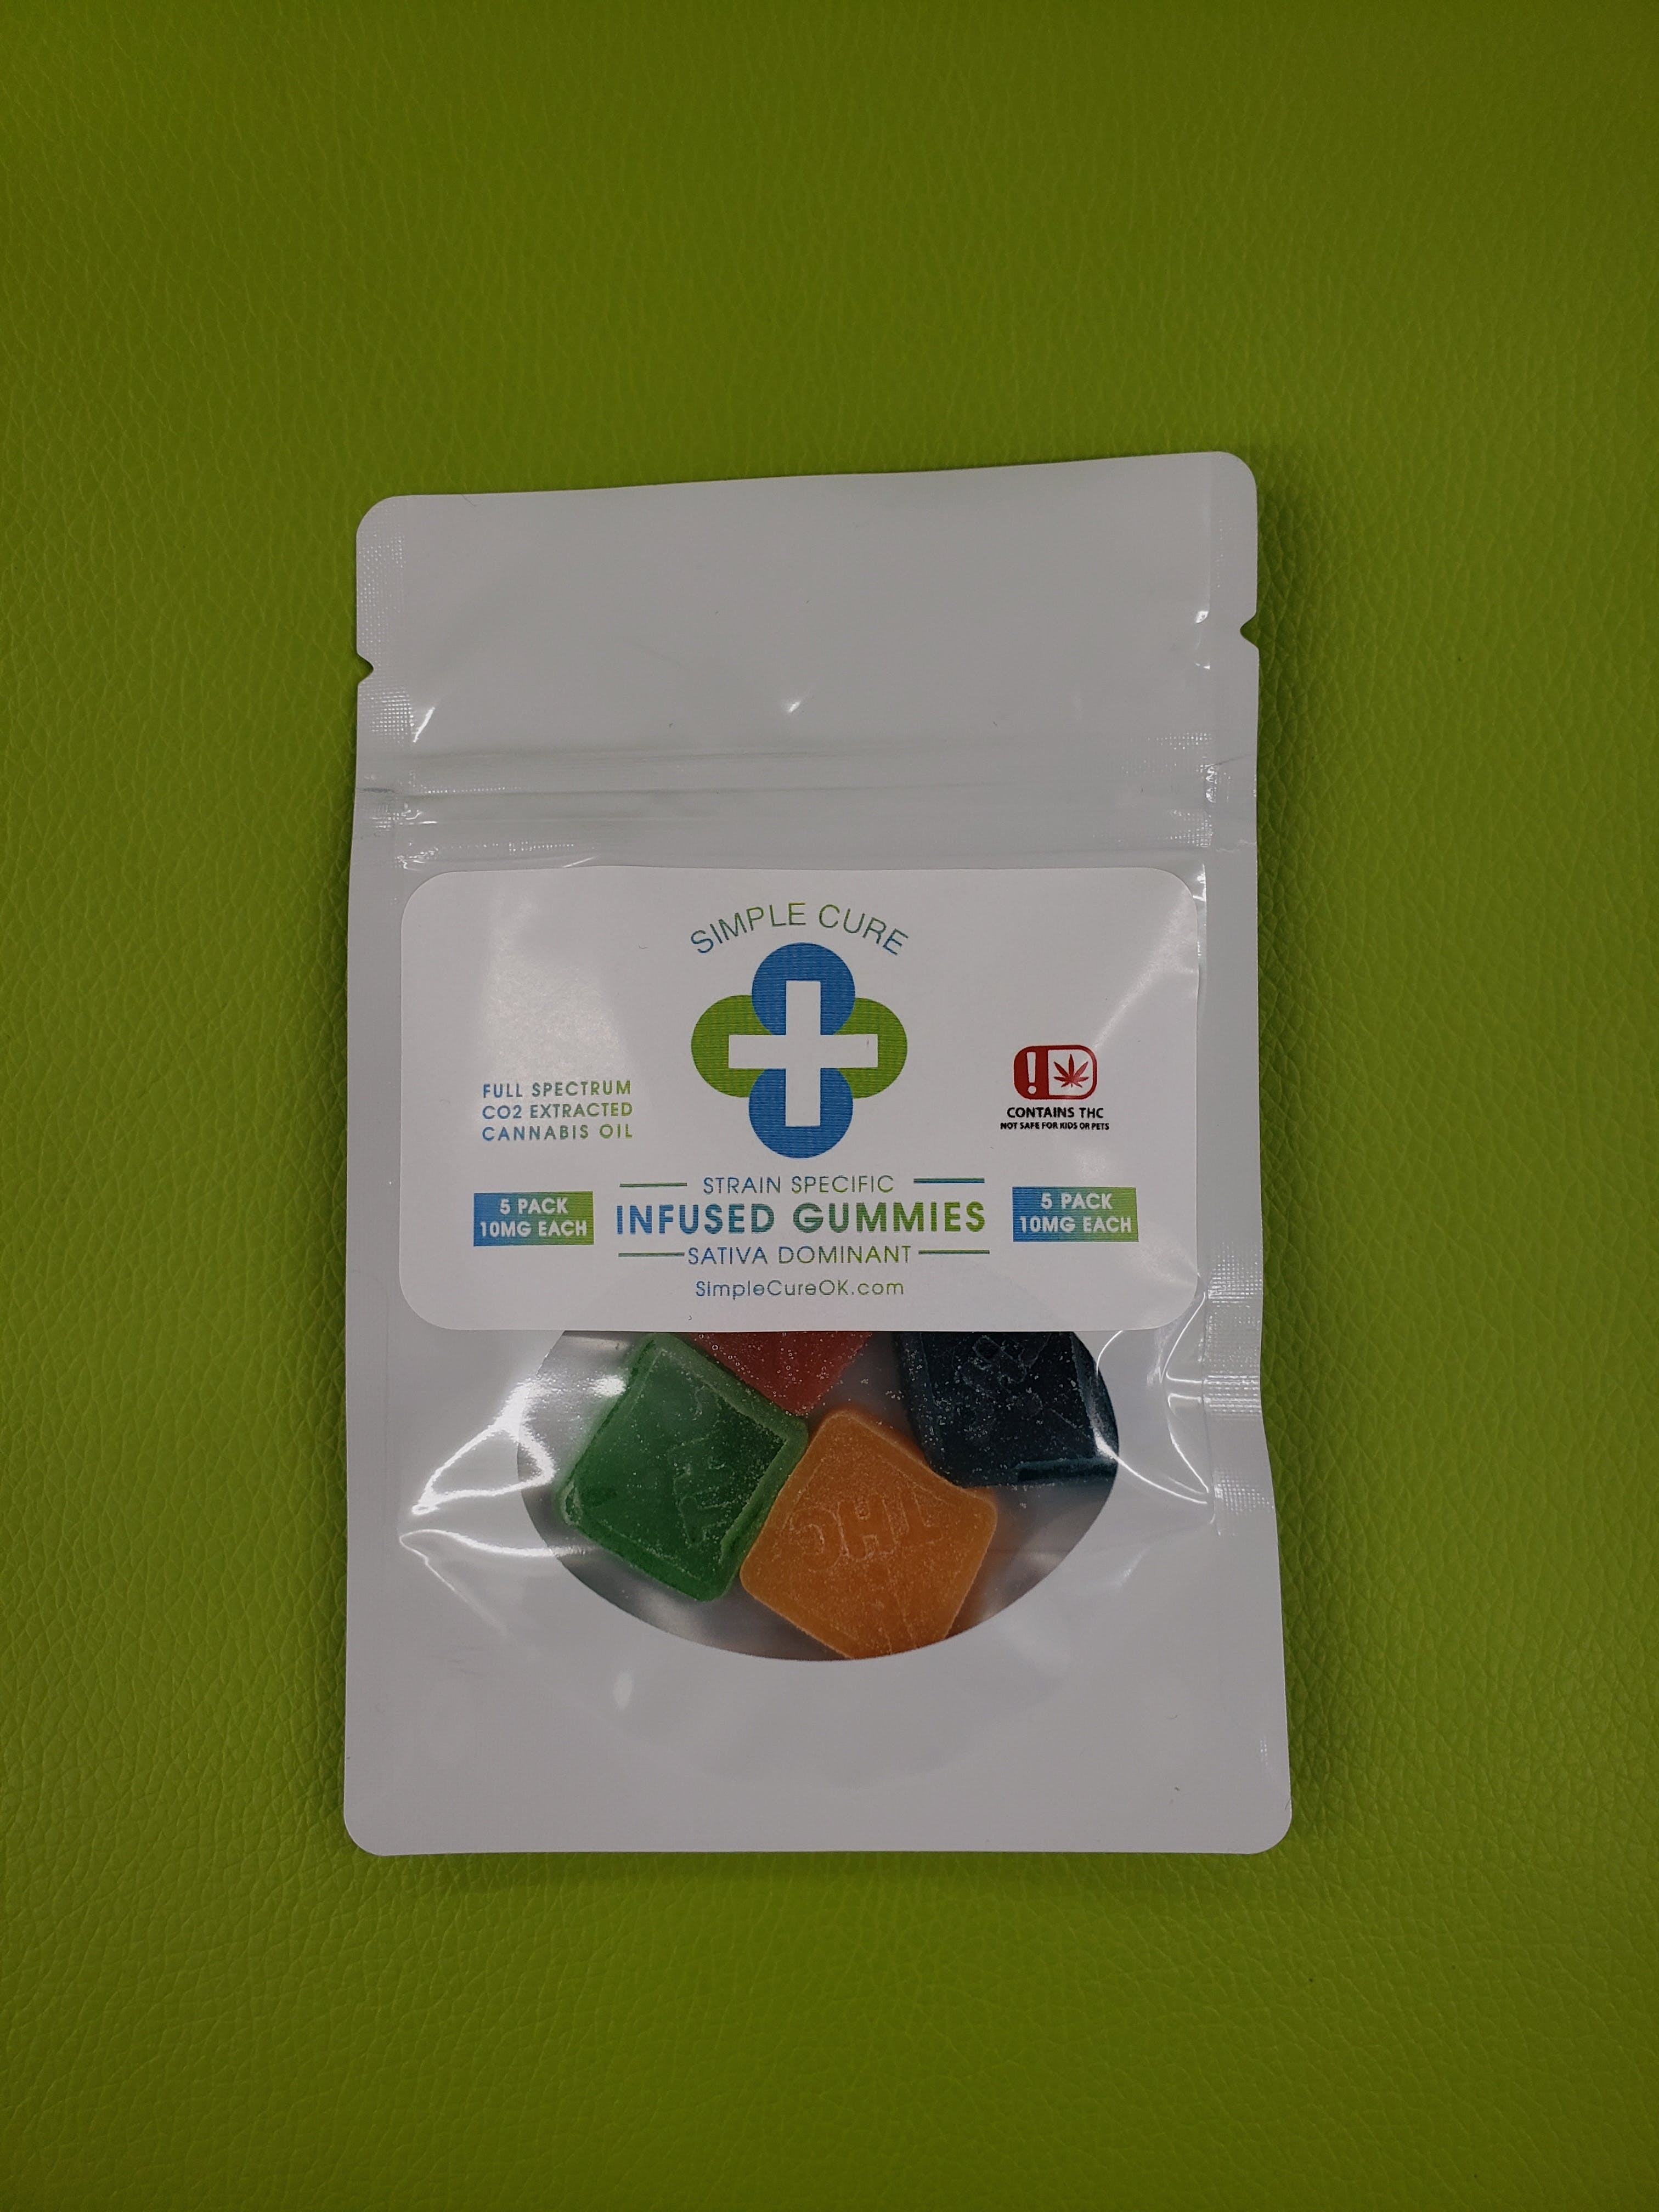 marijuana-dispensaries-1035-36th-ave-nw-norman-simple-cure-5pk-sativa-gummies-10mg-each-all-taxes-included